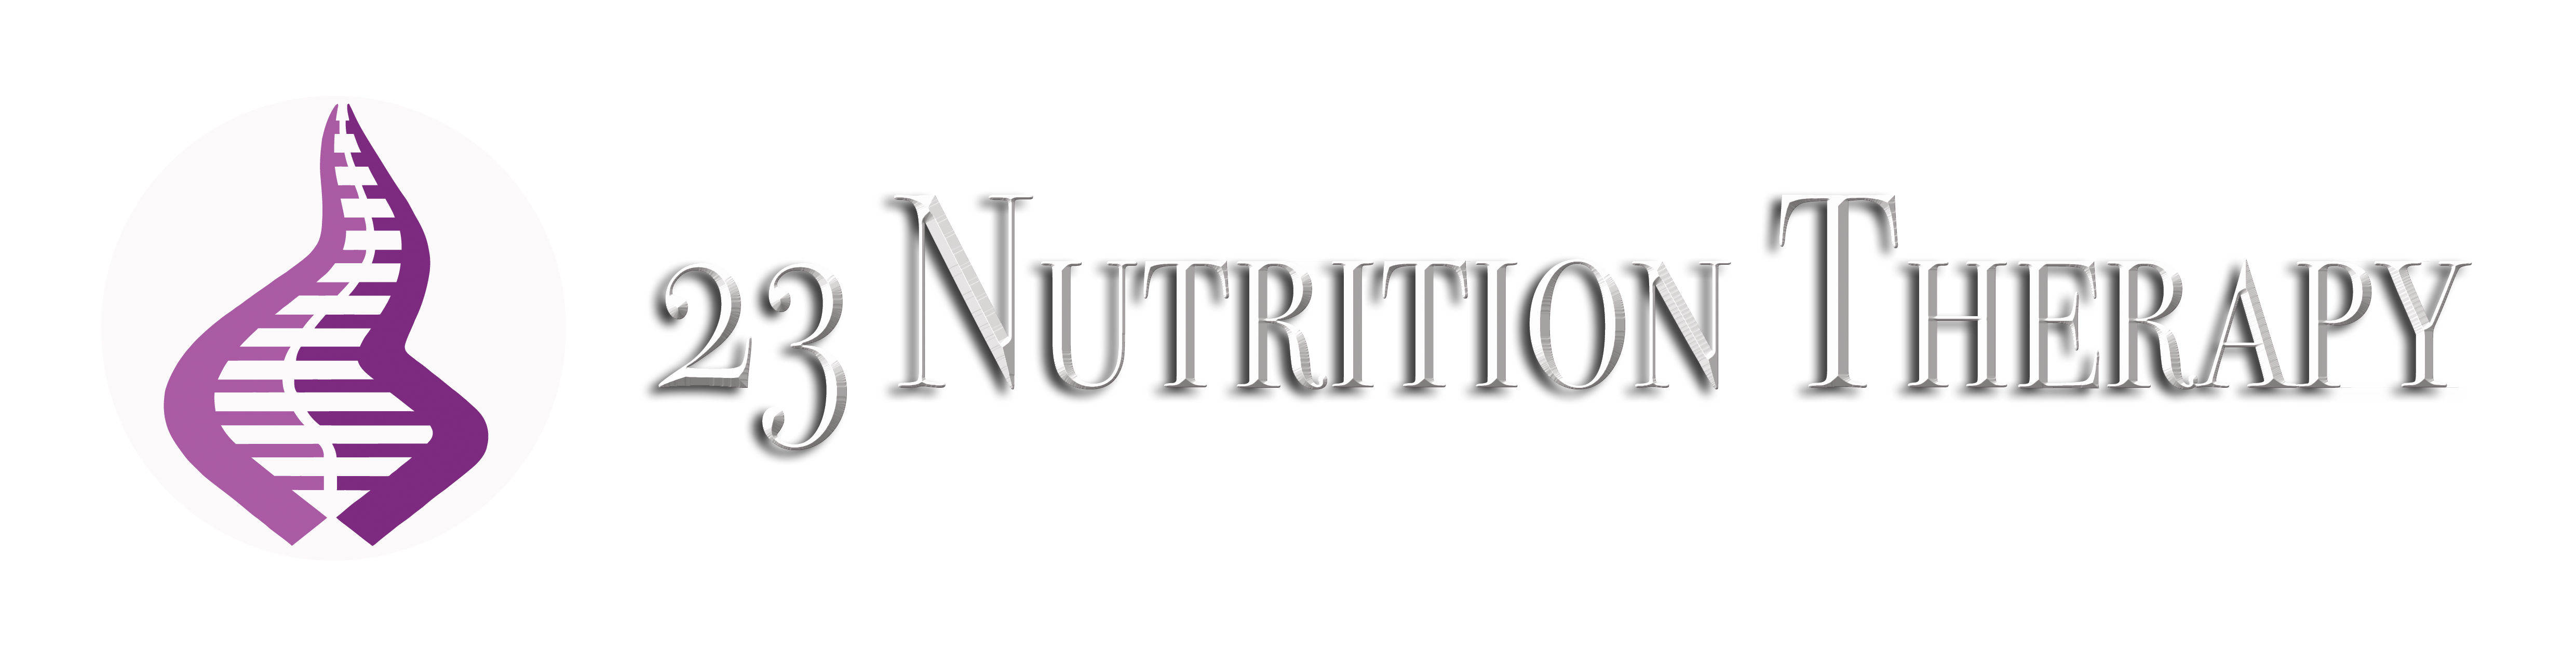 23 Nutrition Therapy